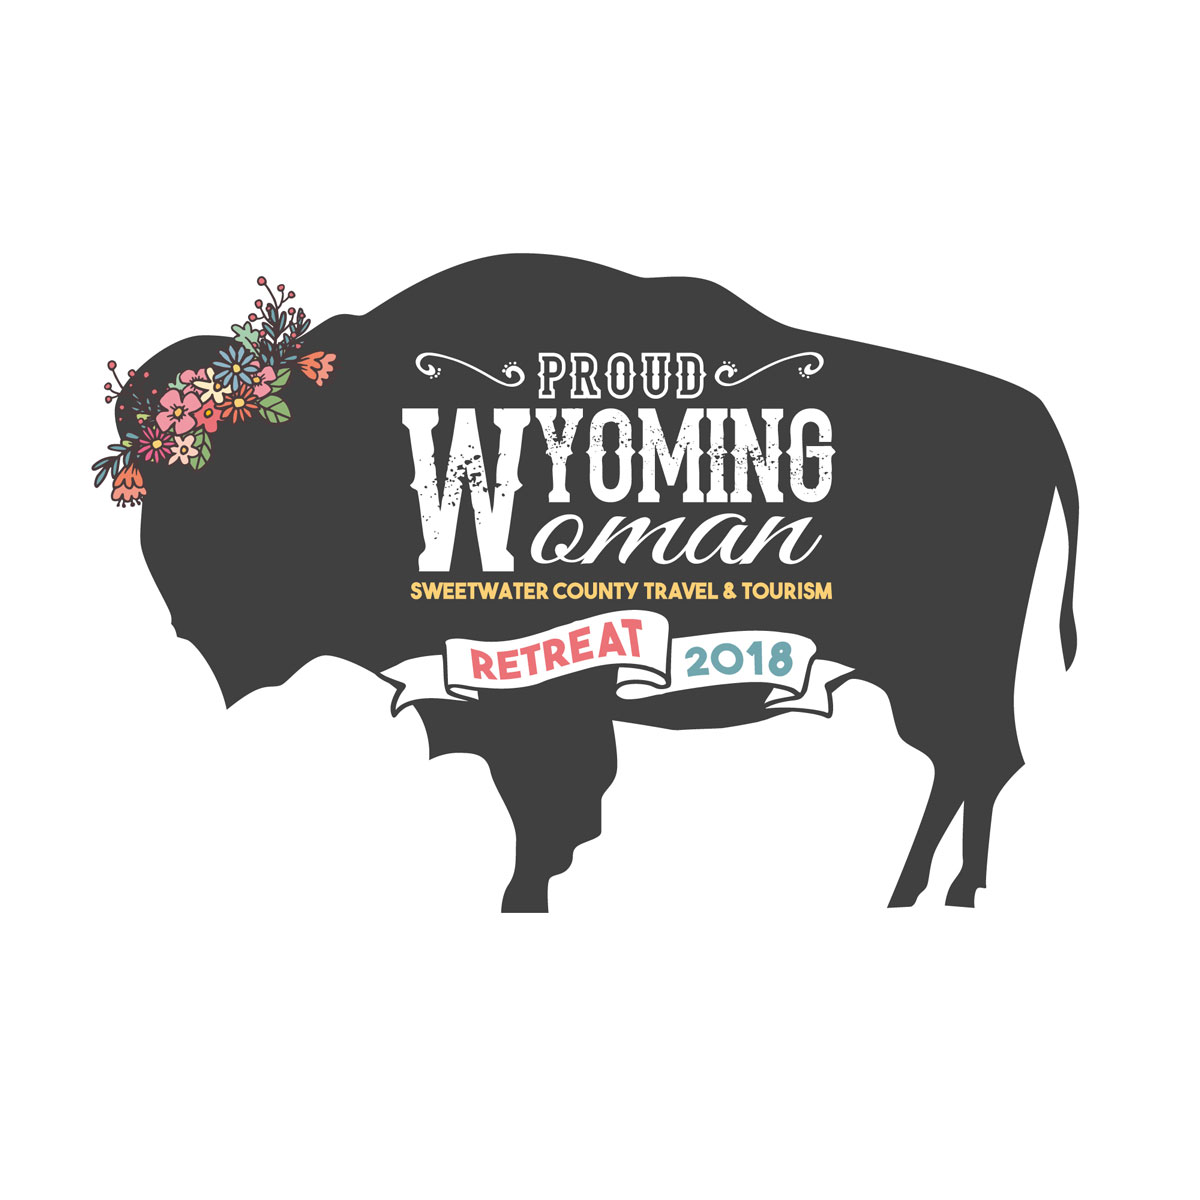 "Sweetwater County Travel and Tourism to Host ""Proud Wyoming Woman Retreat"" in Honor of the Upcoming 150th Anniversary of Wyoming Women's Suffrage"